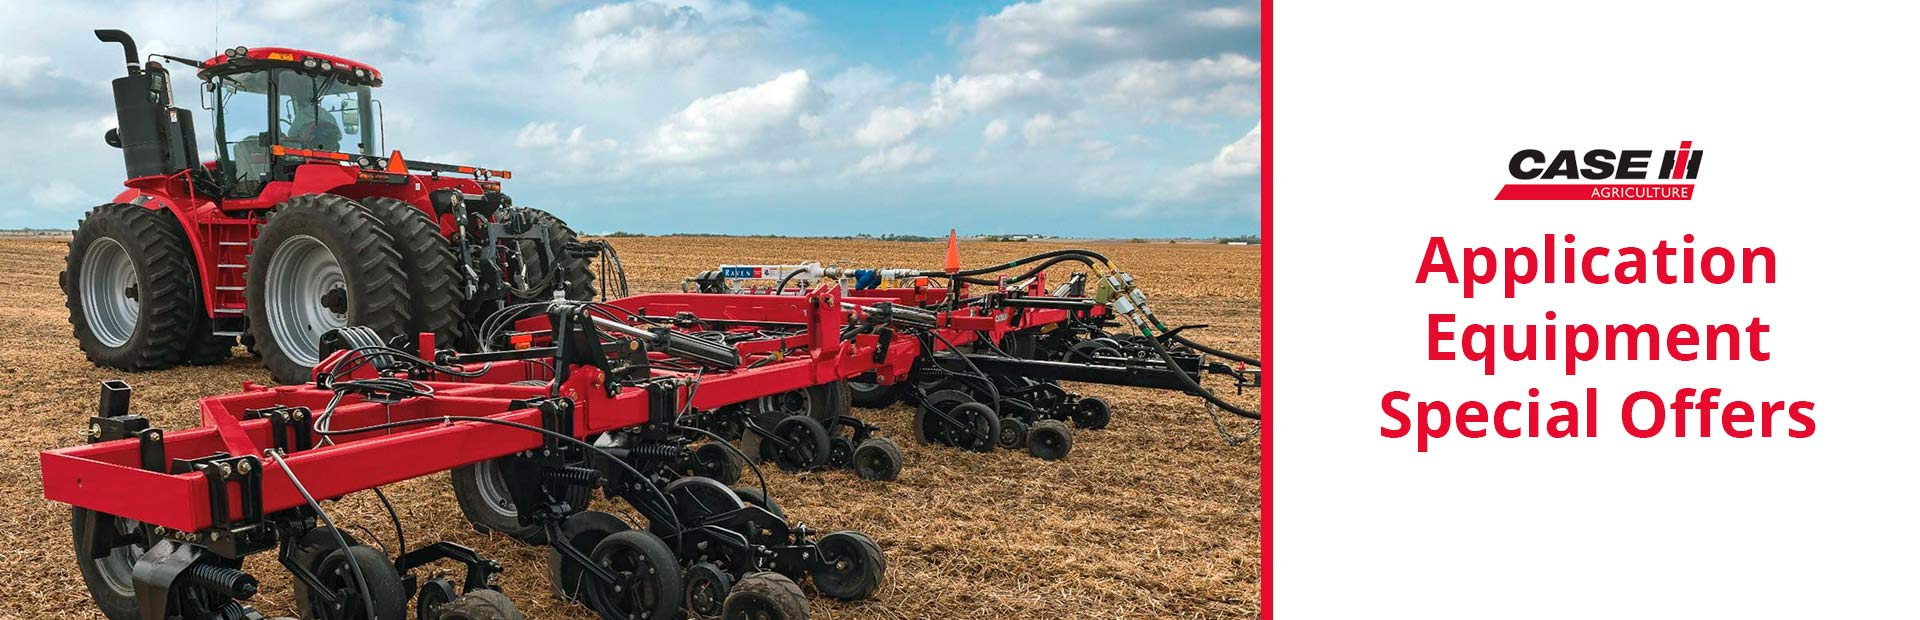 Case IH: Application Equipment Special Offers